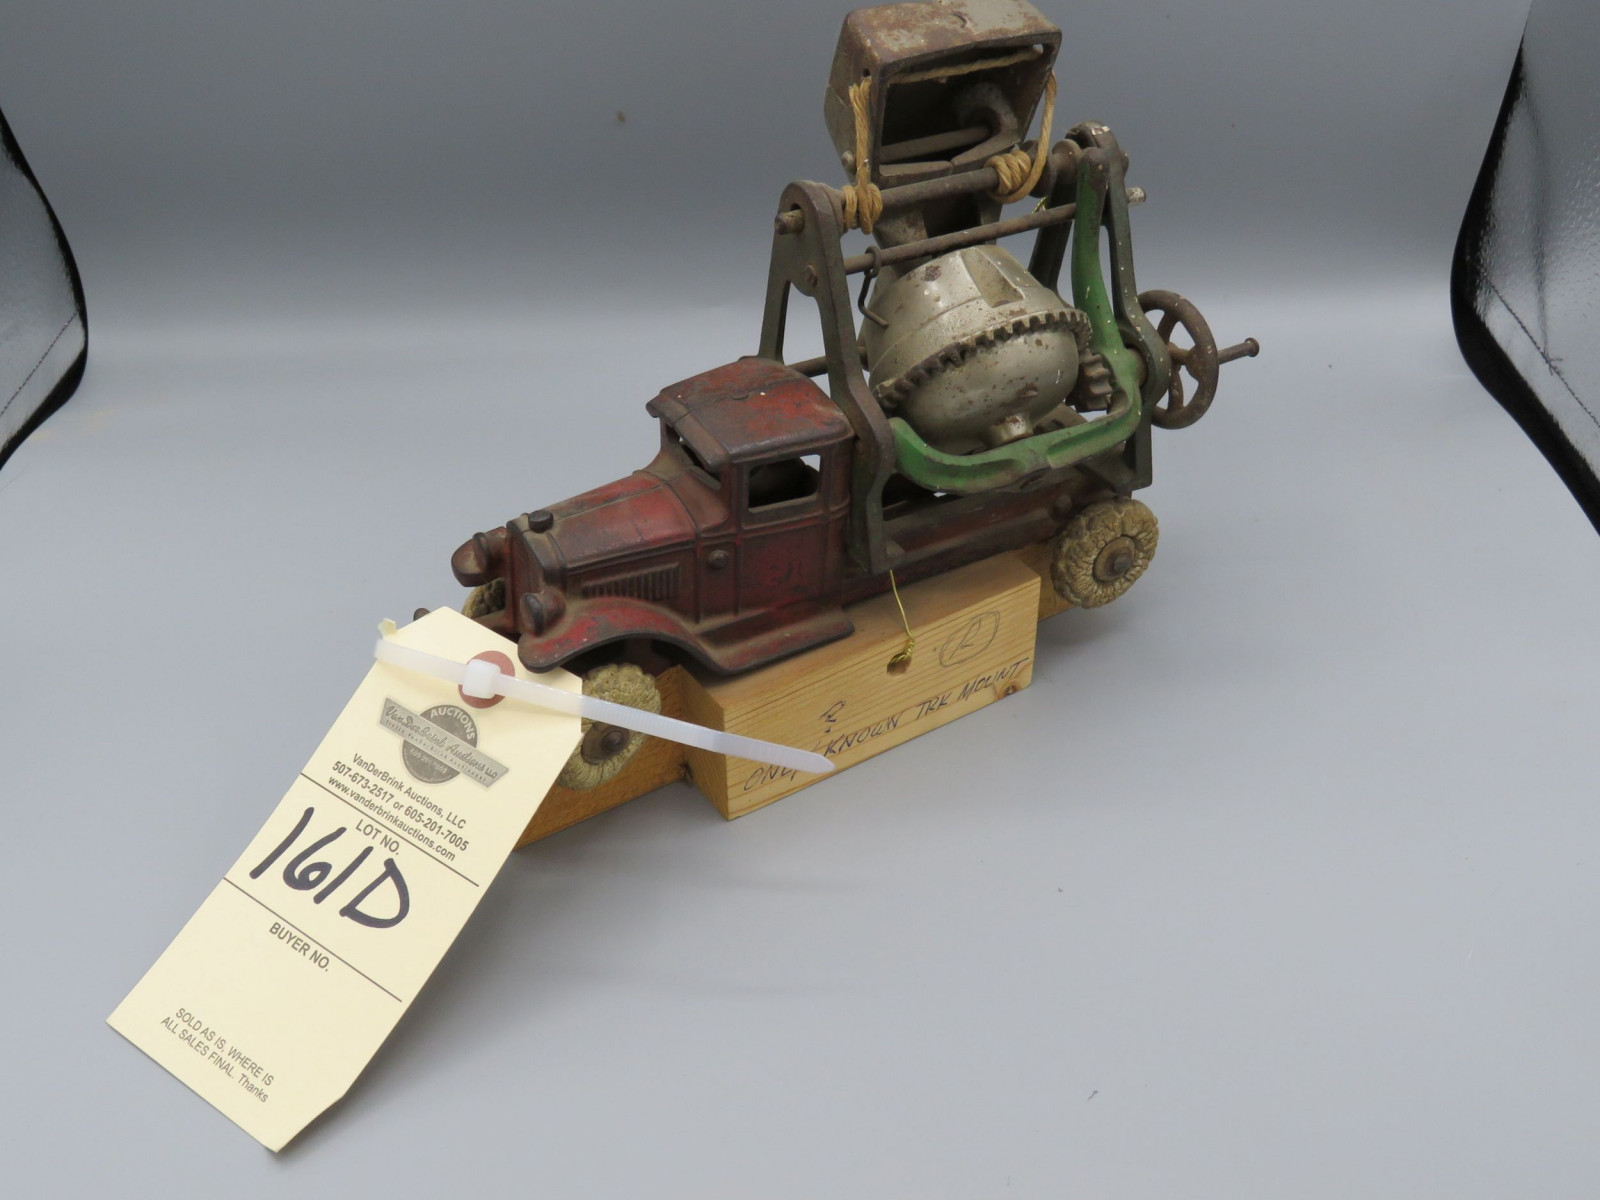 Kenton Cast Iron Toy Truck with Mixer Approx. 8 inches - Image 2